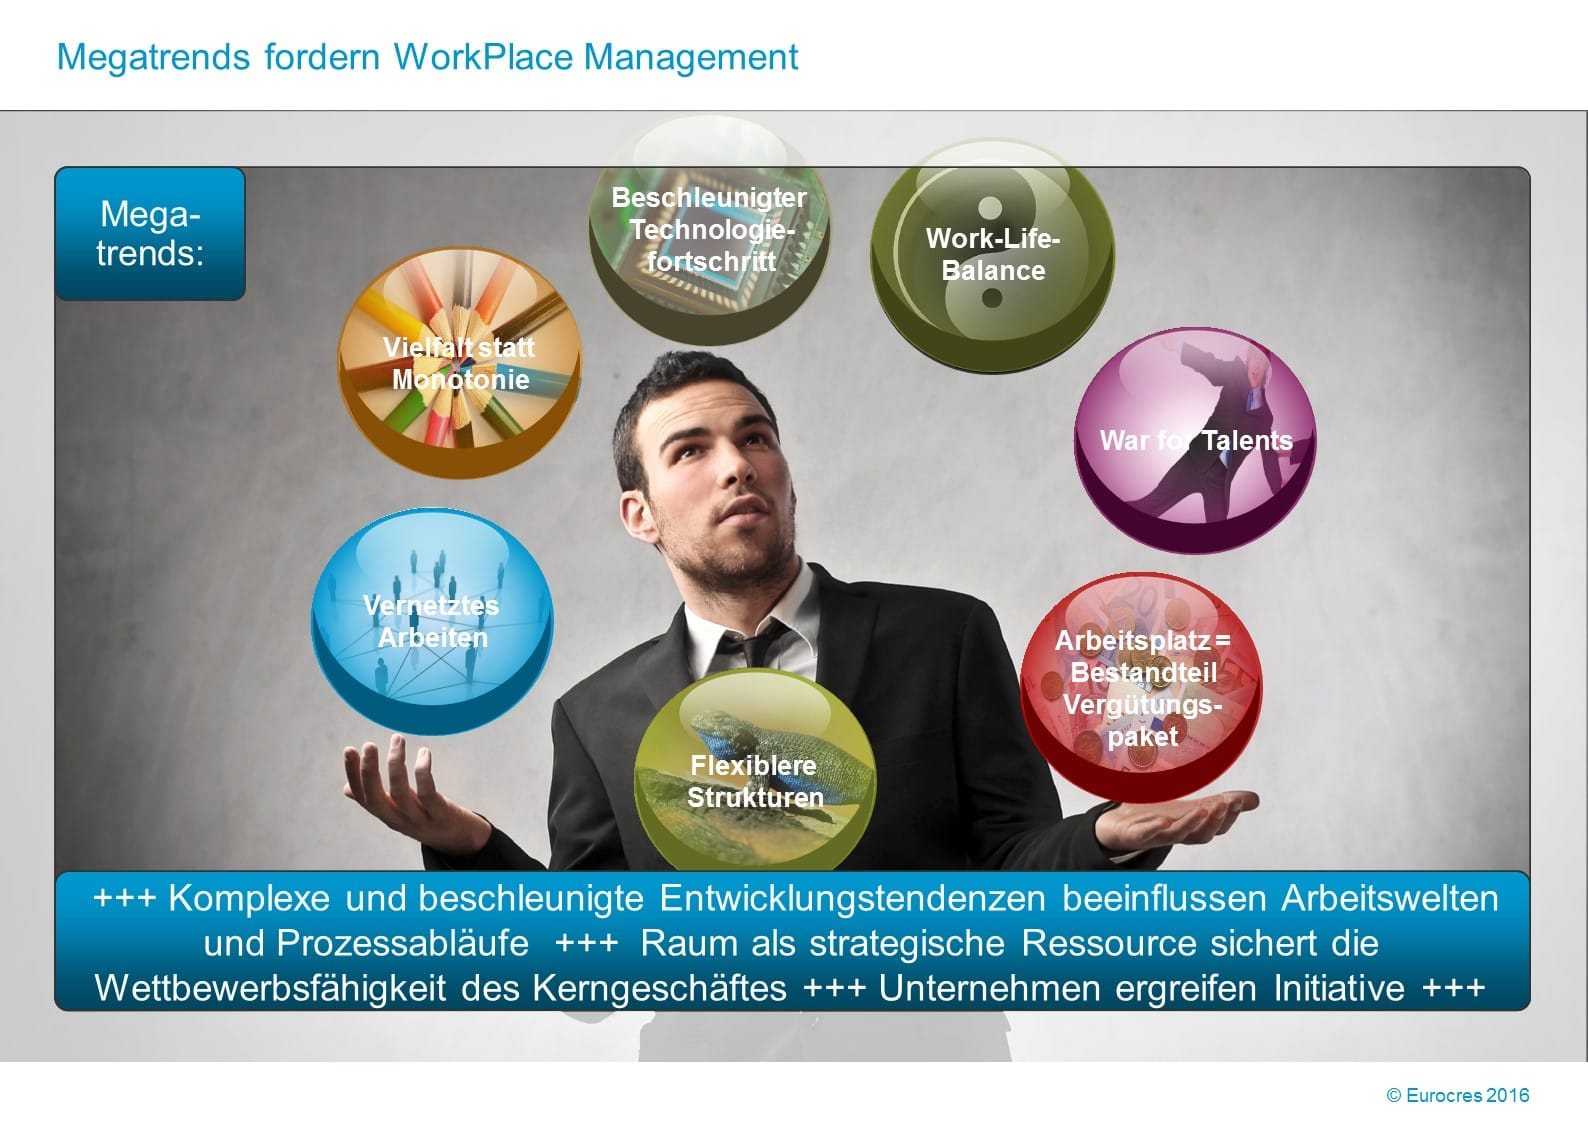 WorkPlace Flash: Megatrends fordern WorkPlace Management